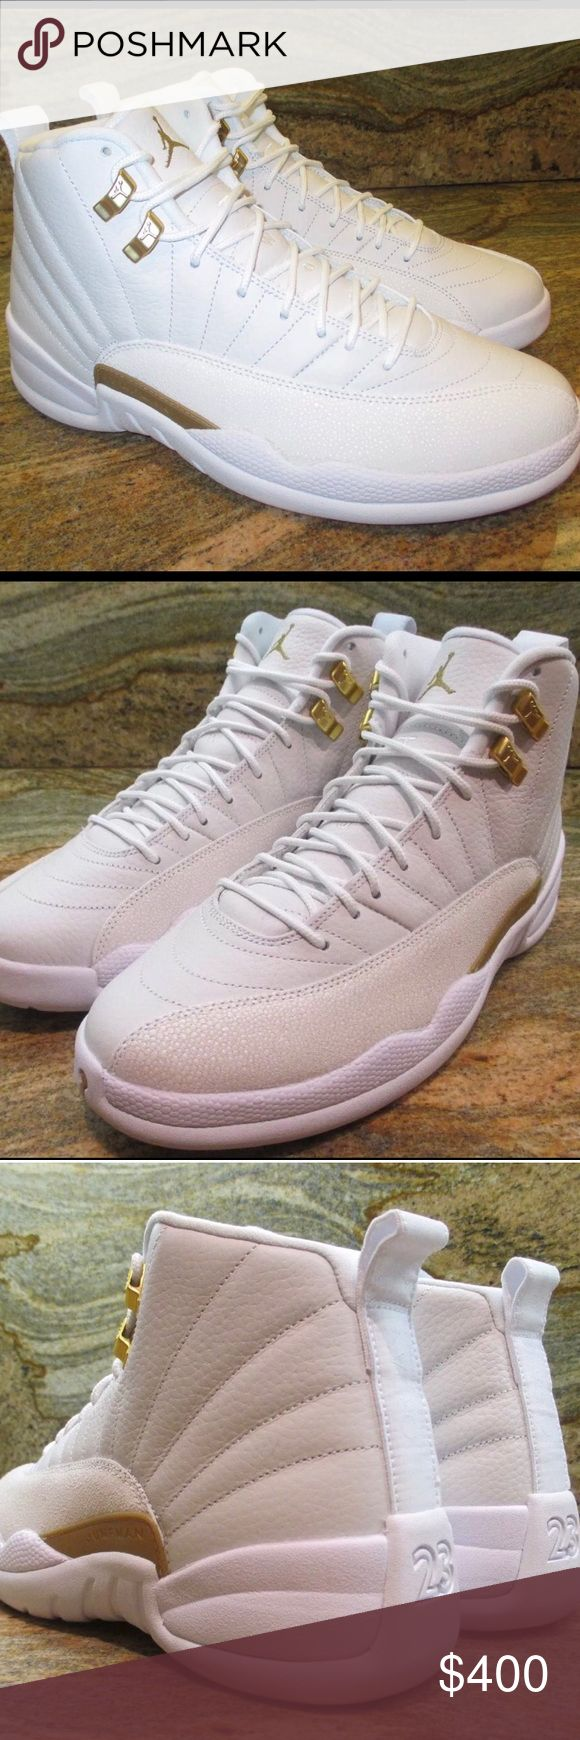 Jordan 12 ovo I don't sell through Poshmark. I ship& accept payment through PayPal or western union. I DONT SELL FAKES OR REPLICAS. I DONT DO TRADES. If serious interested contact me (734) 400-4618 Jordan Shoes Sneakers